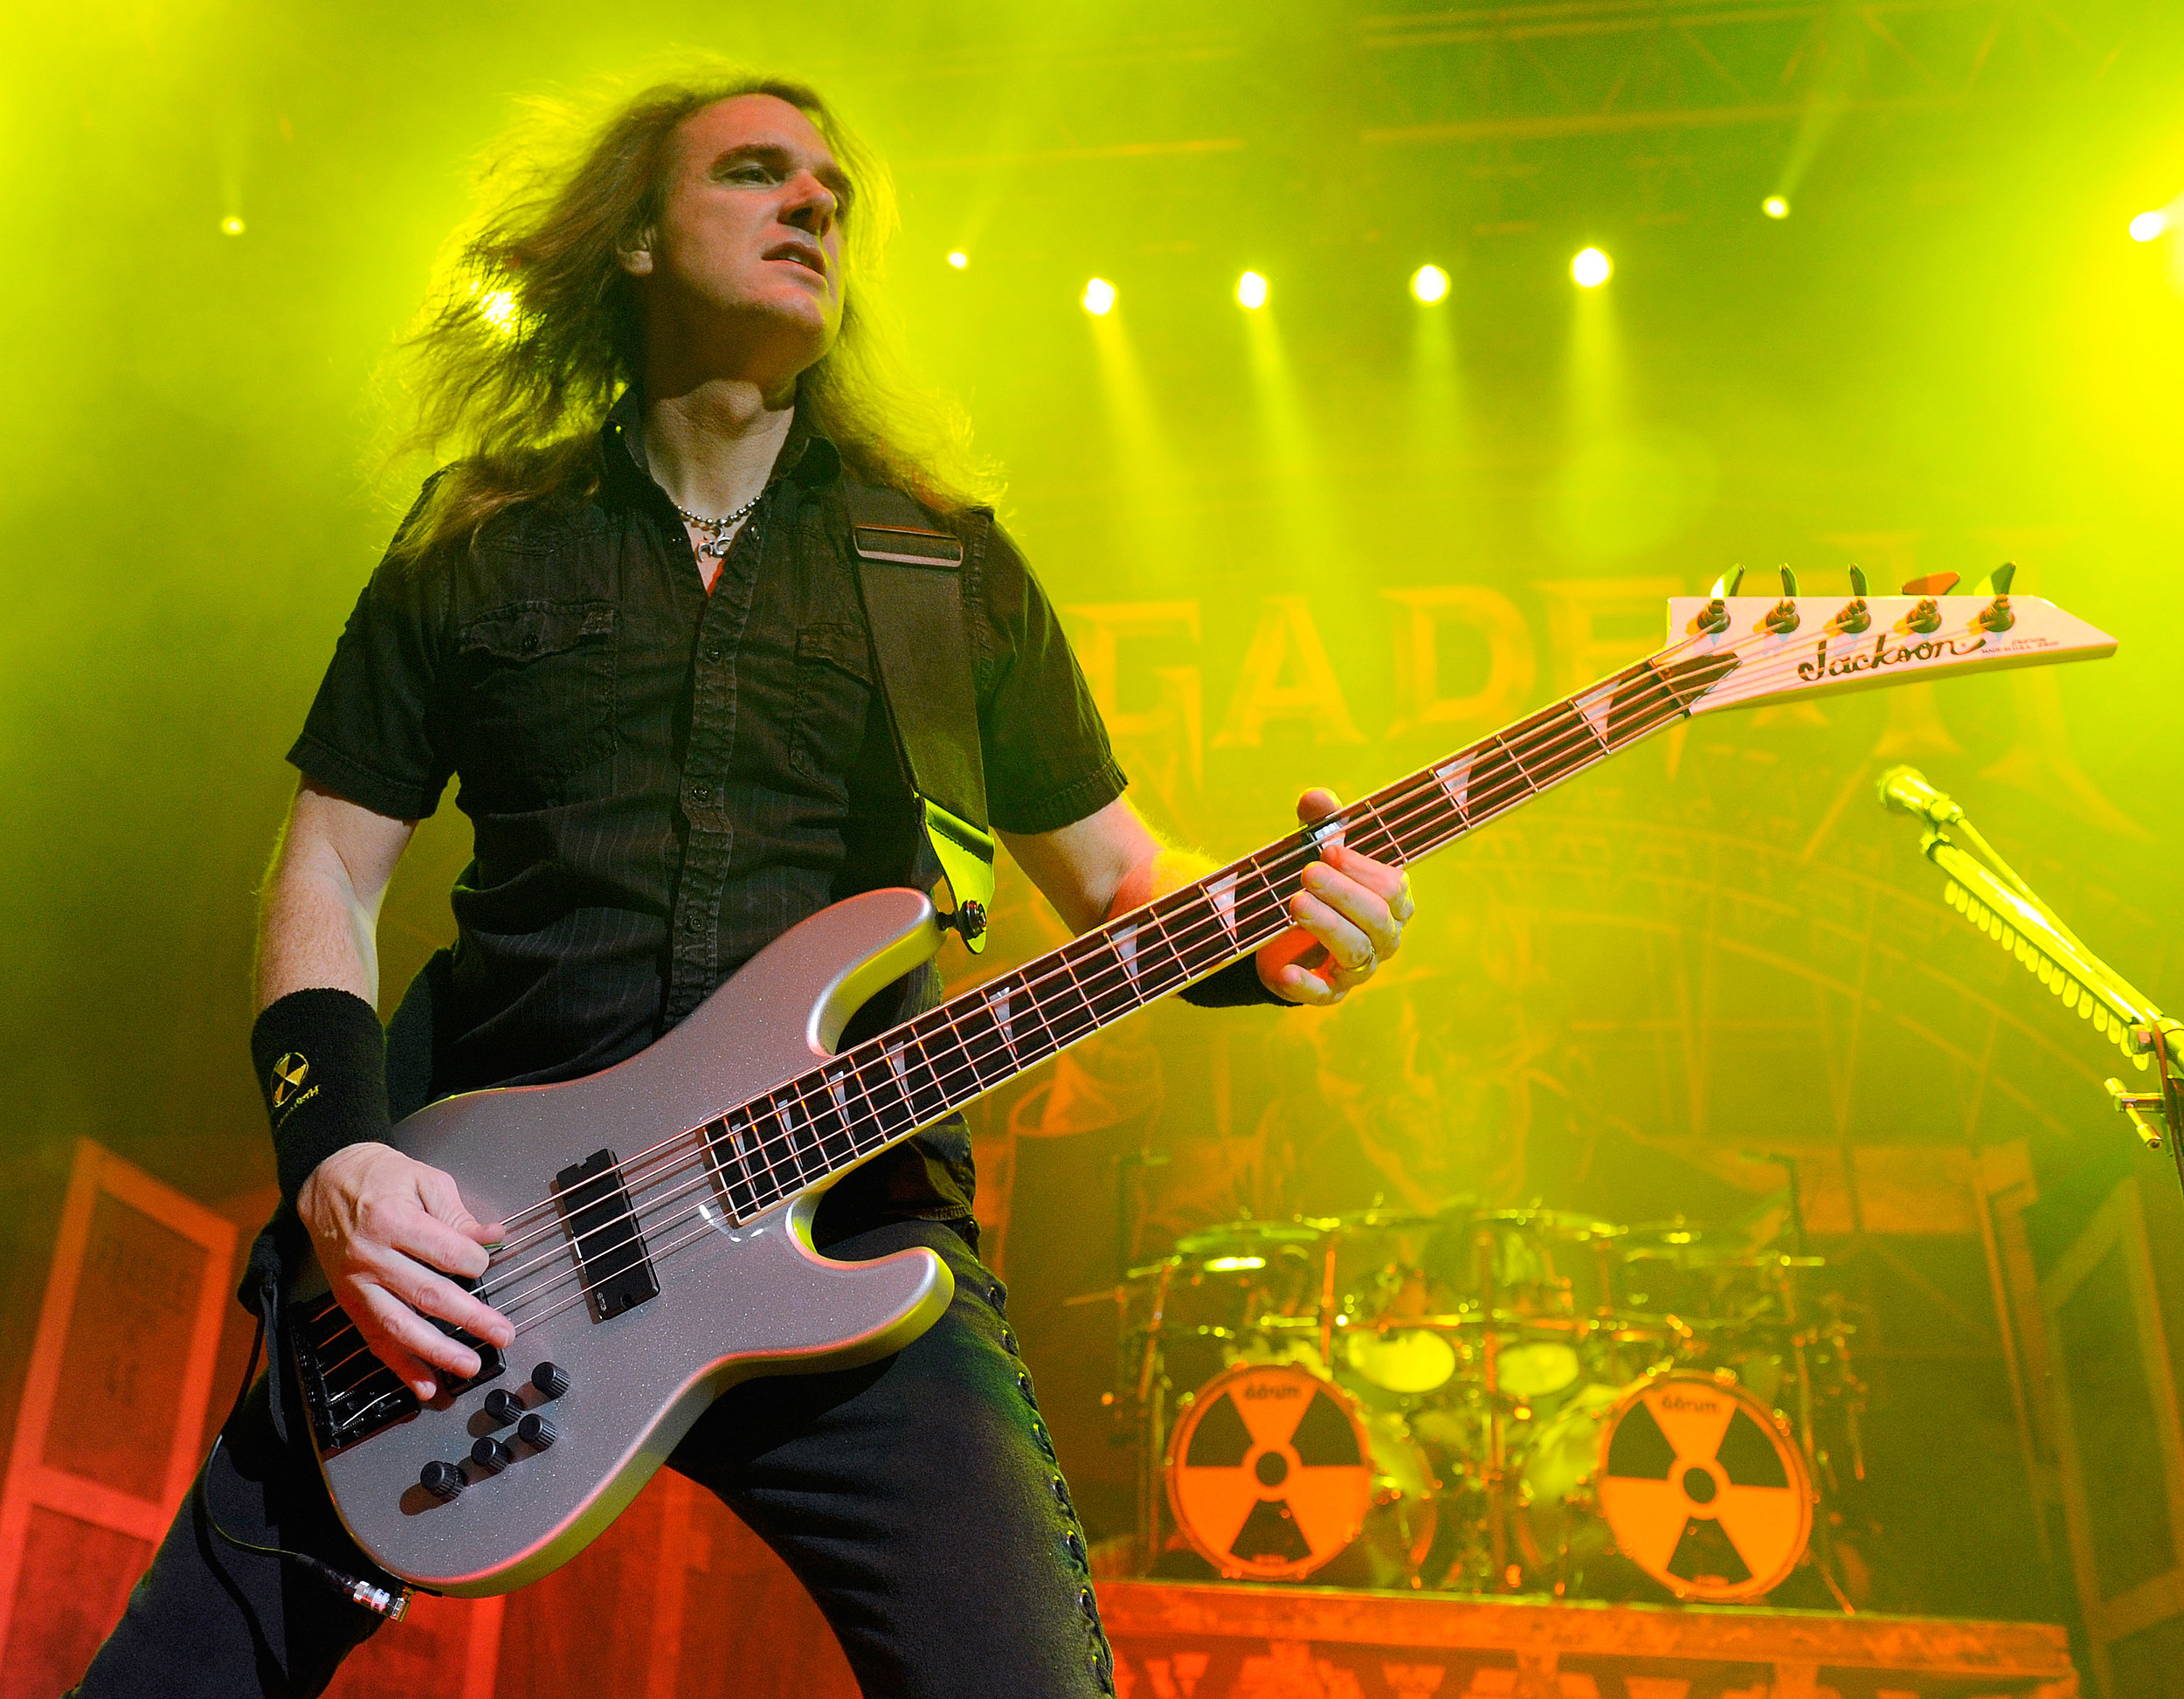 Dave Ellefson of Megadeth teams up with Frank Bello of Anthrax